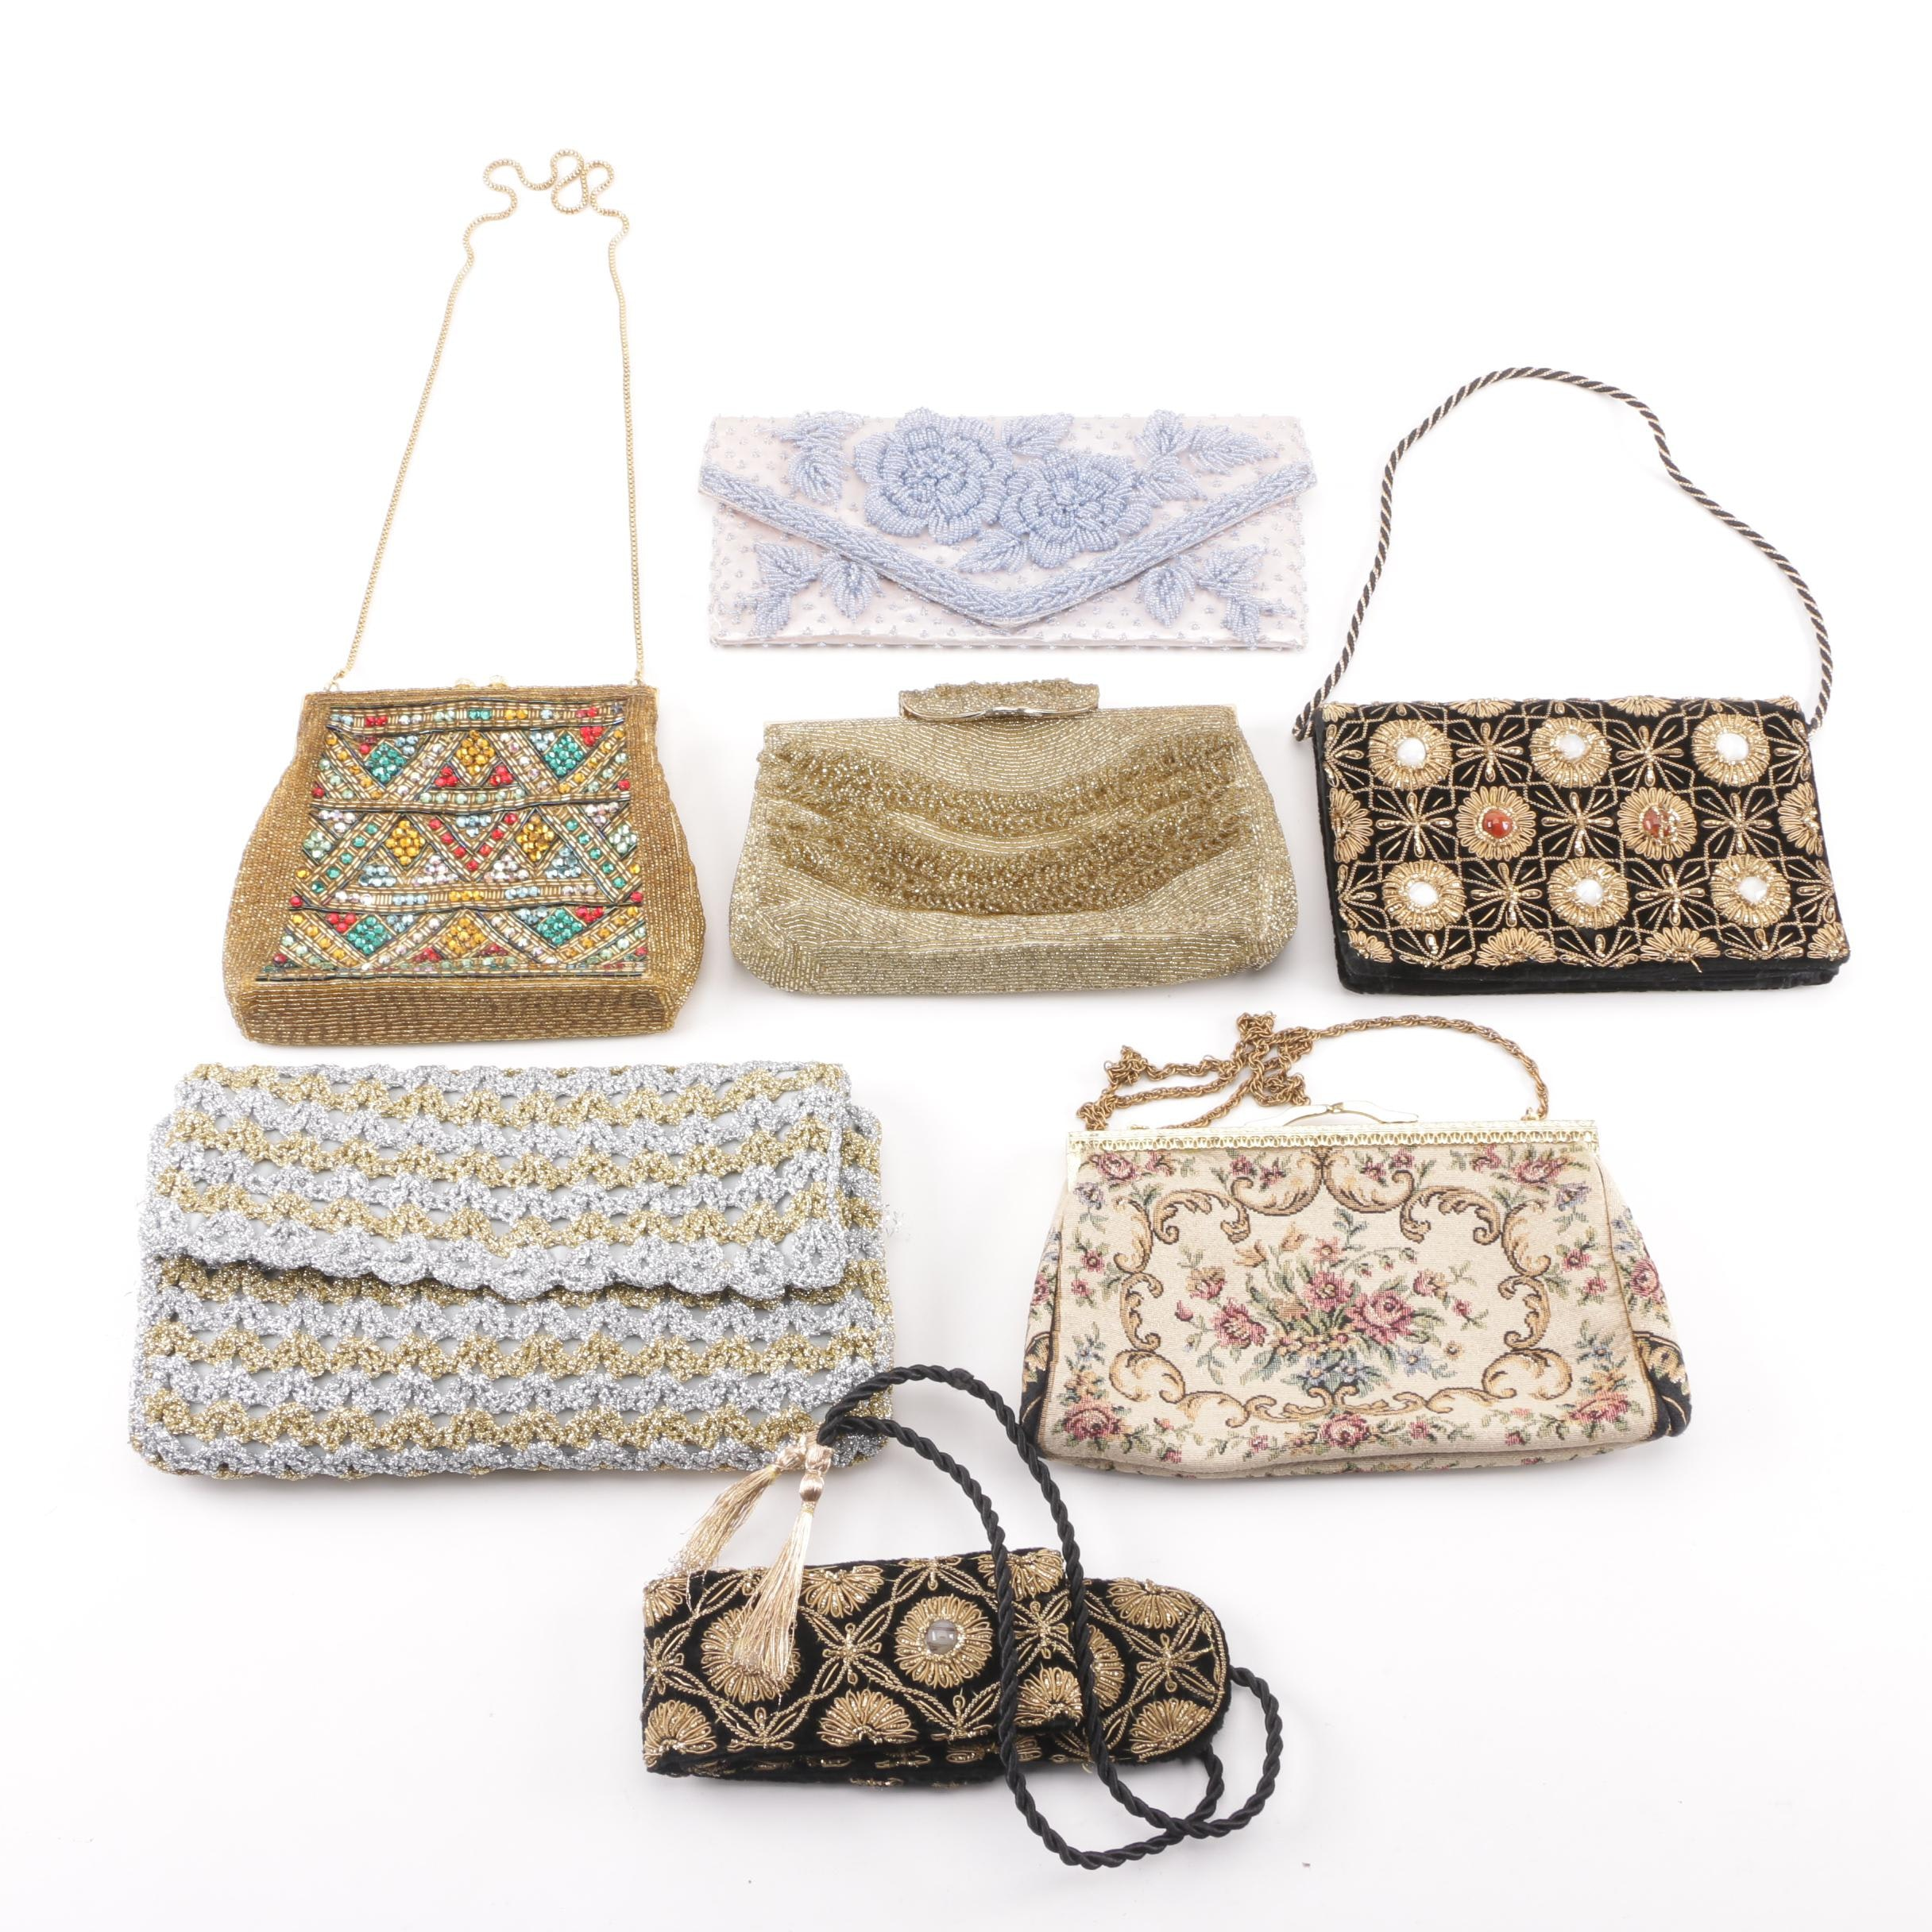 Vintage Evening Bags including Harry Rosenfeld, Magid and Zardozi Embroidery